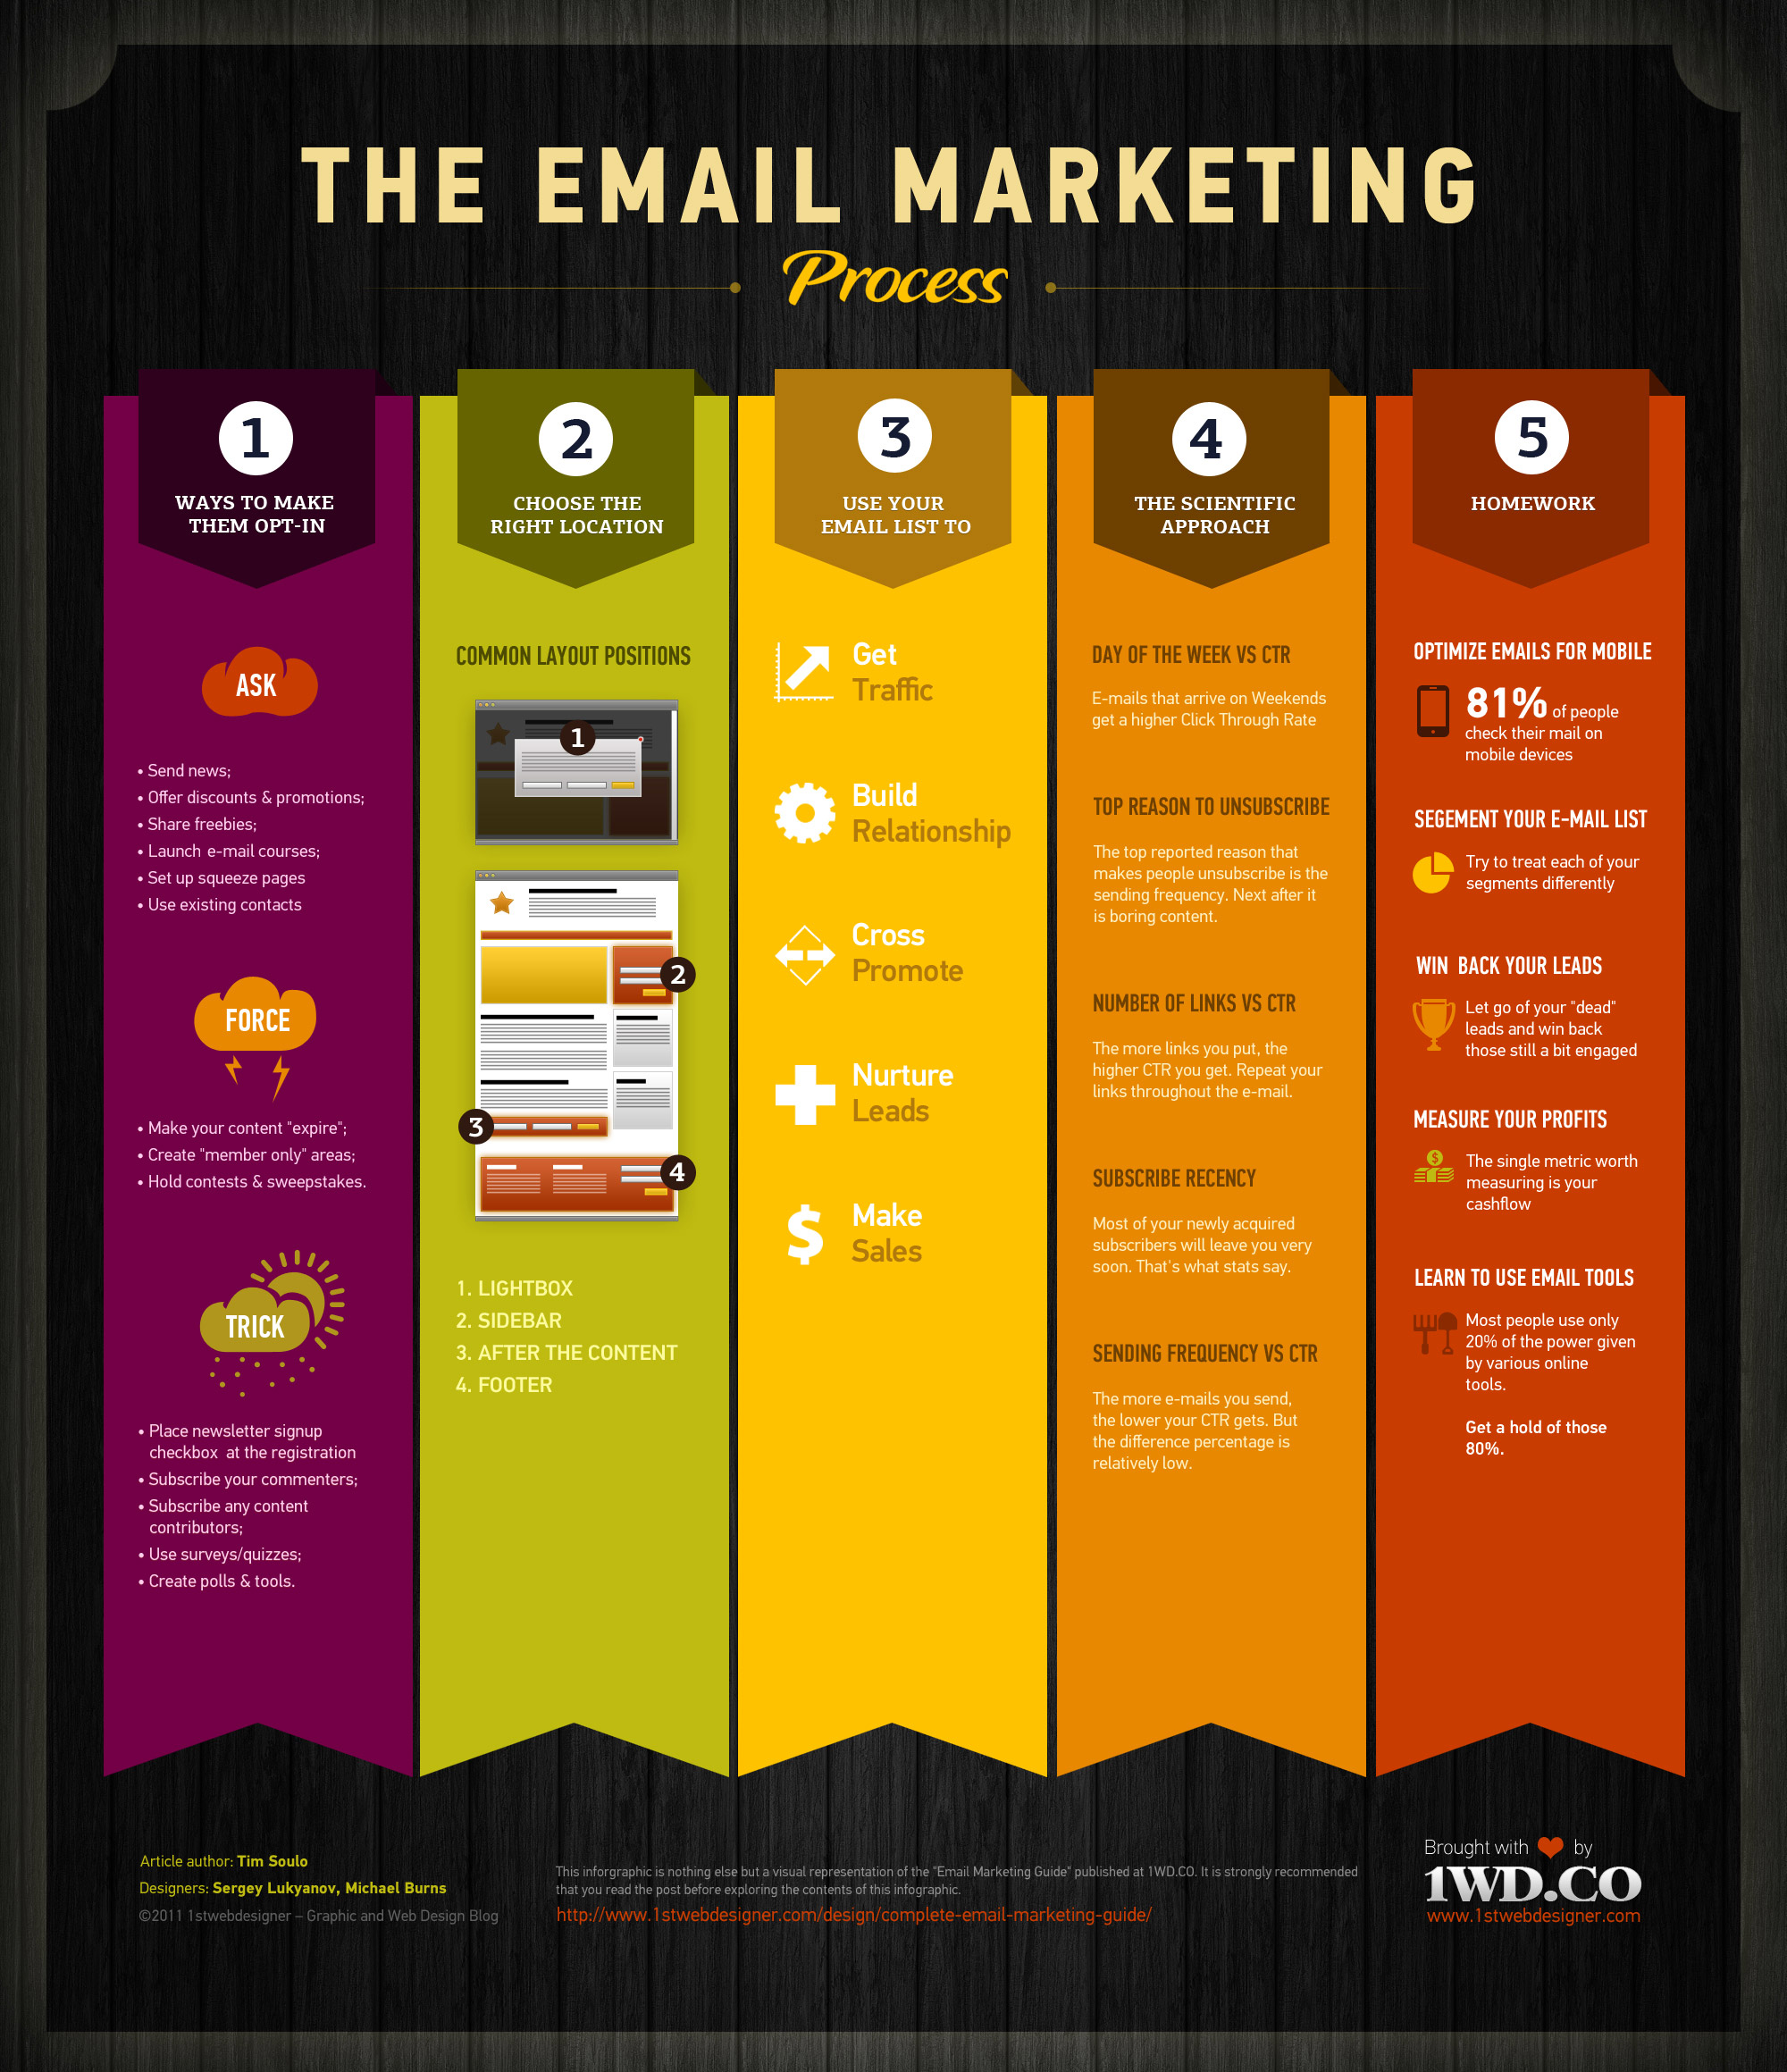 [Infographic] The E-Mail Marketing Process